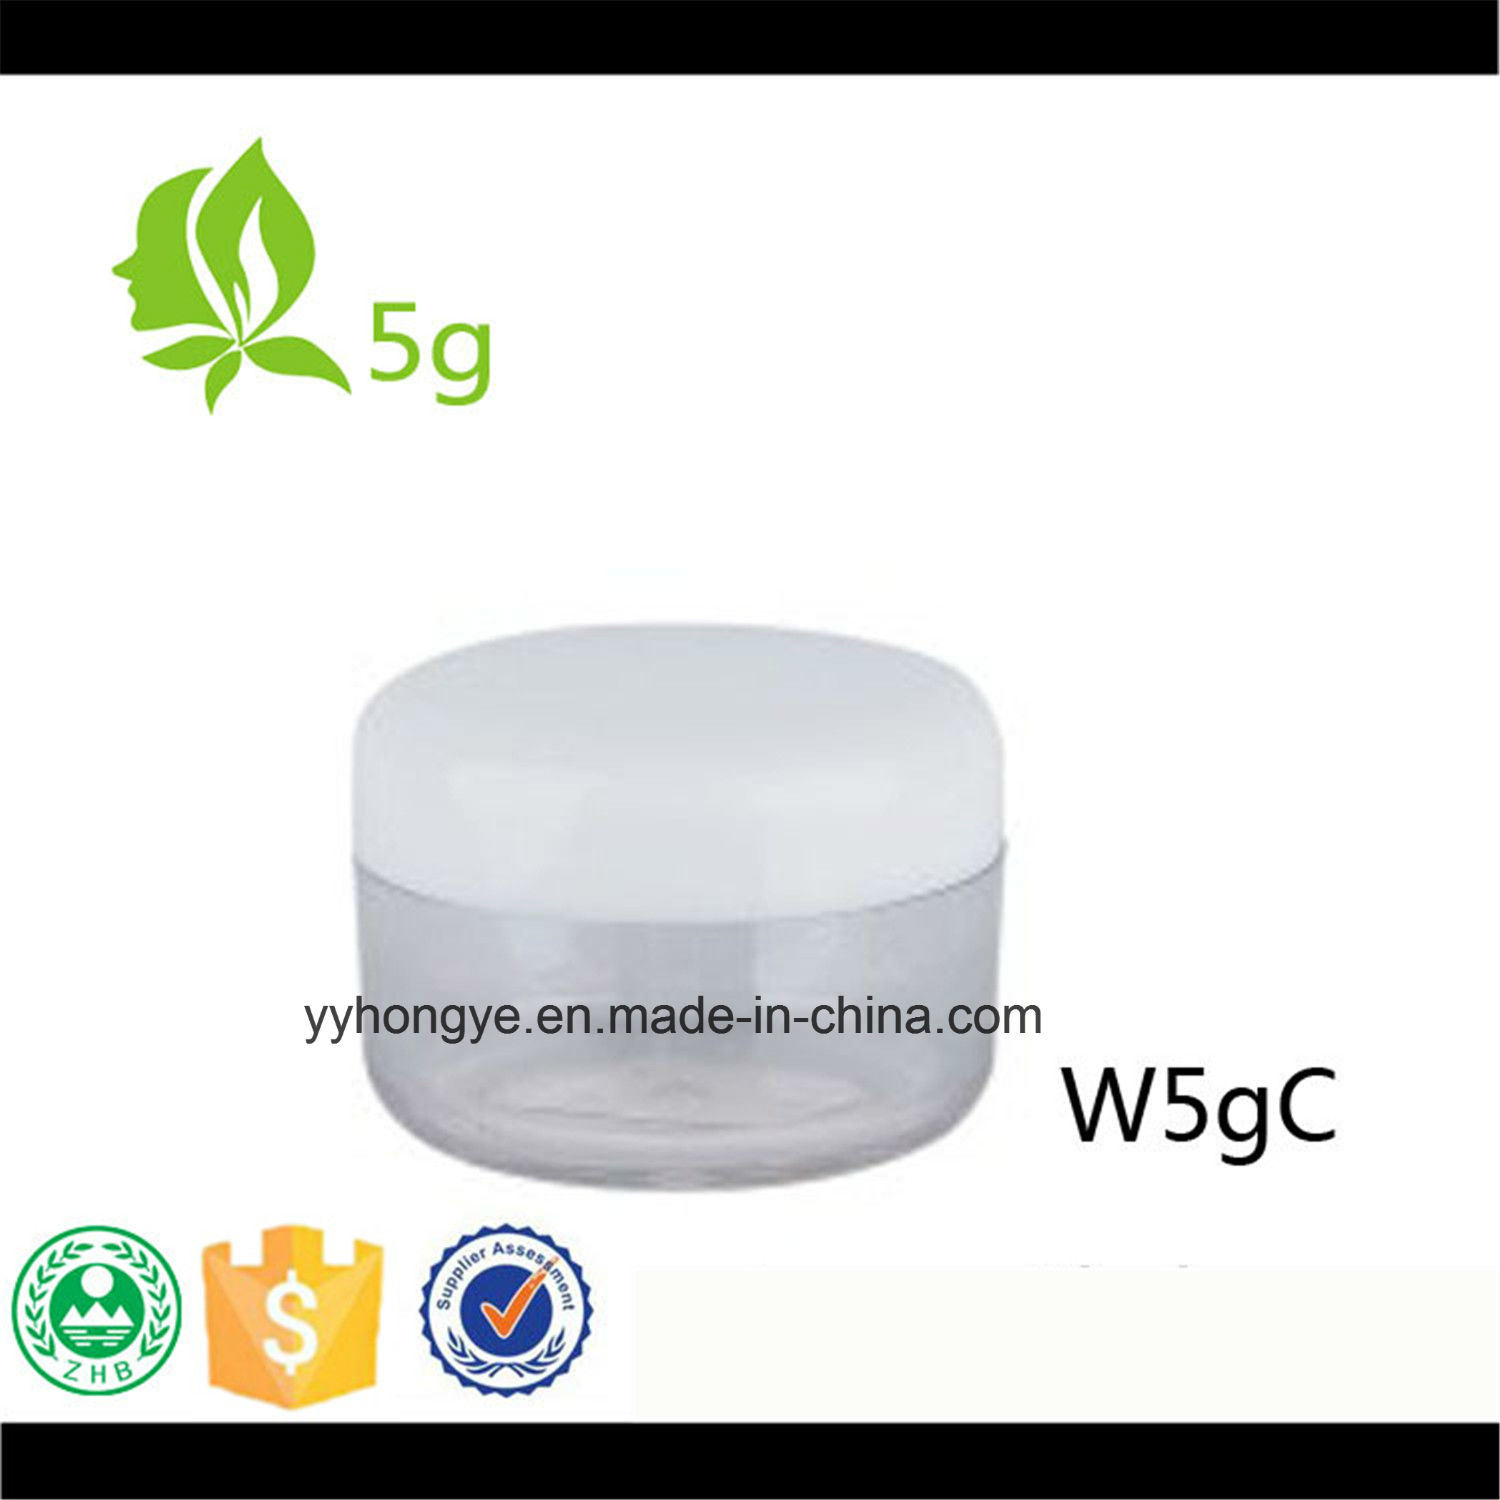 5g Plastic PS Cream Jar with PP Cap